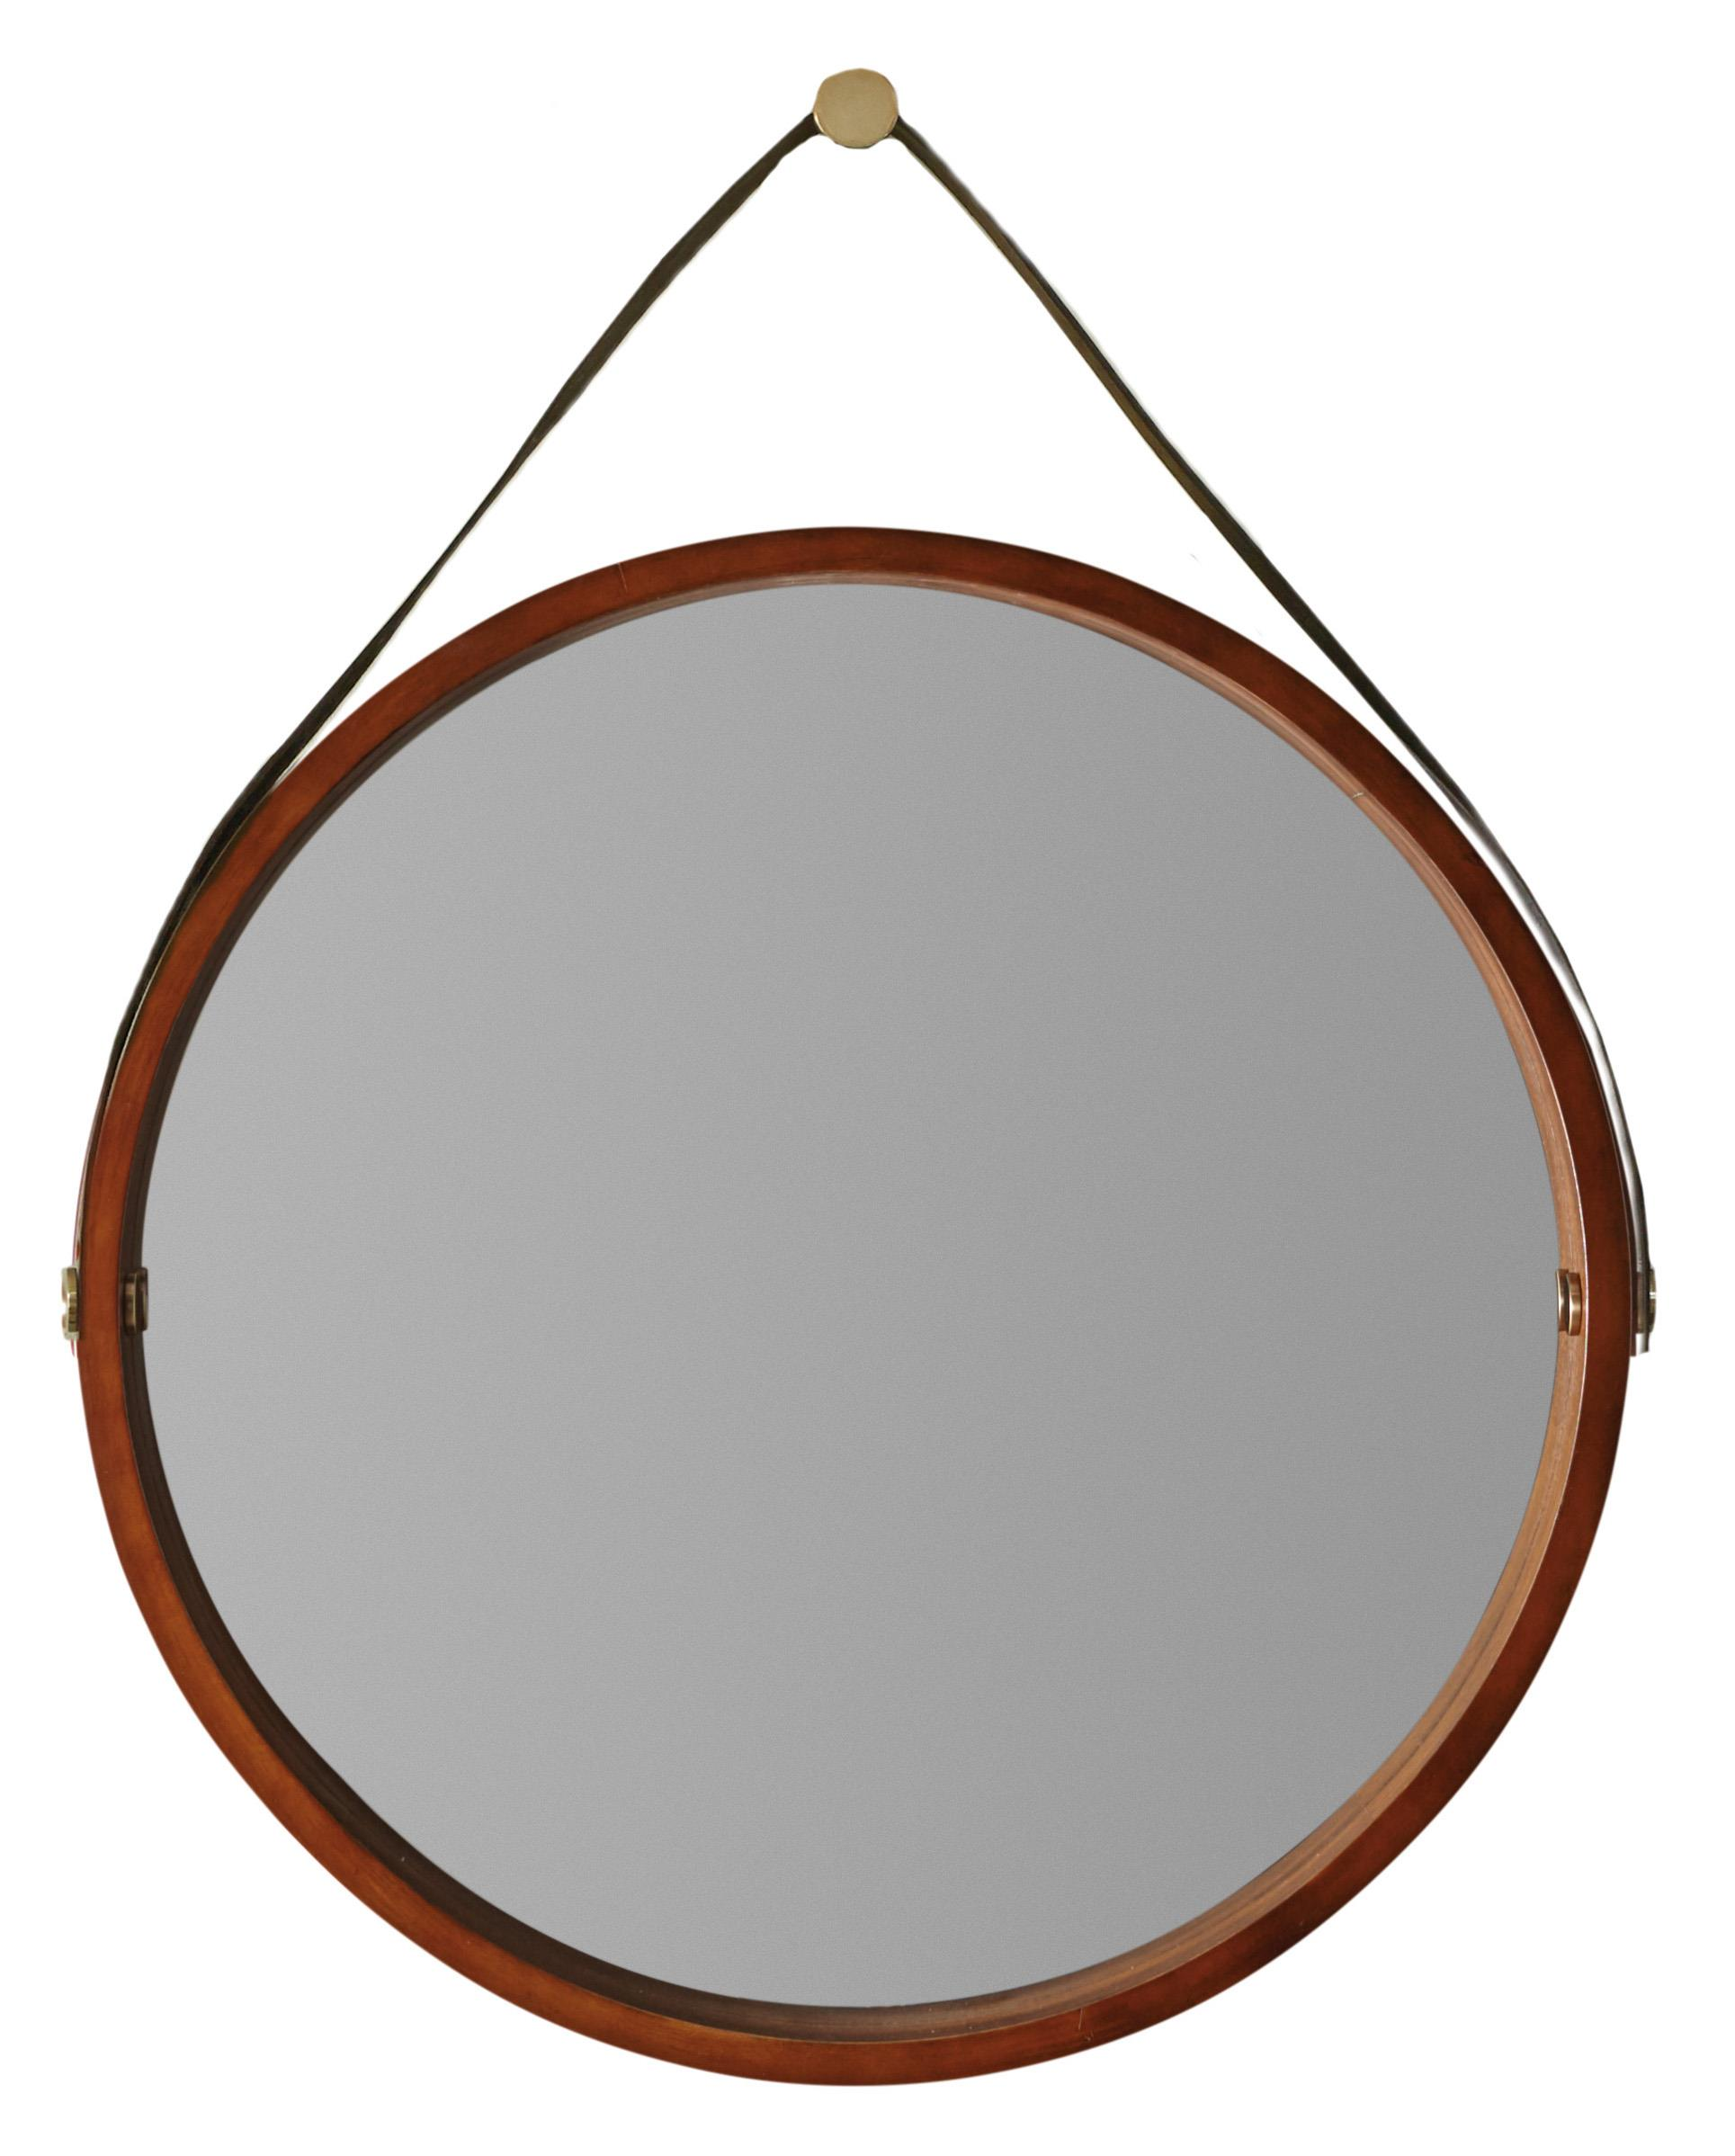 Hooker Furniture Studio 7H Portal Round Mirror - Item Number: 5398-90007